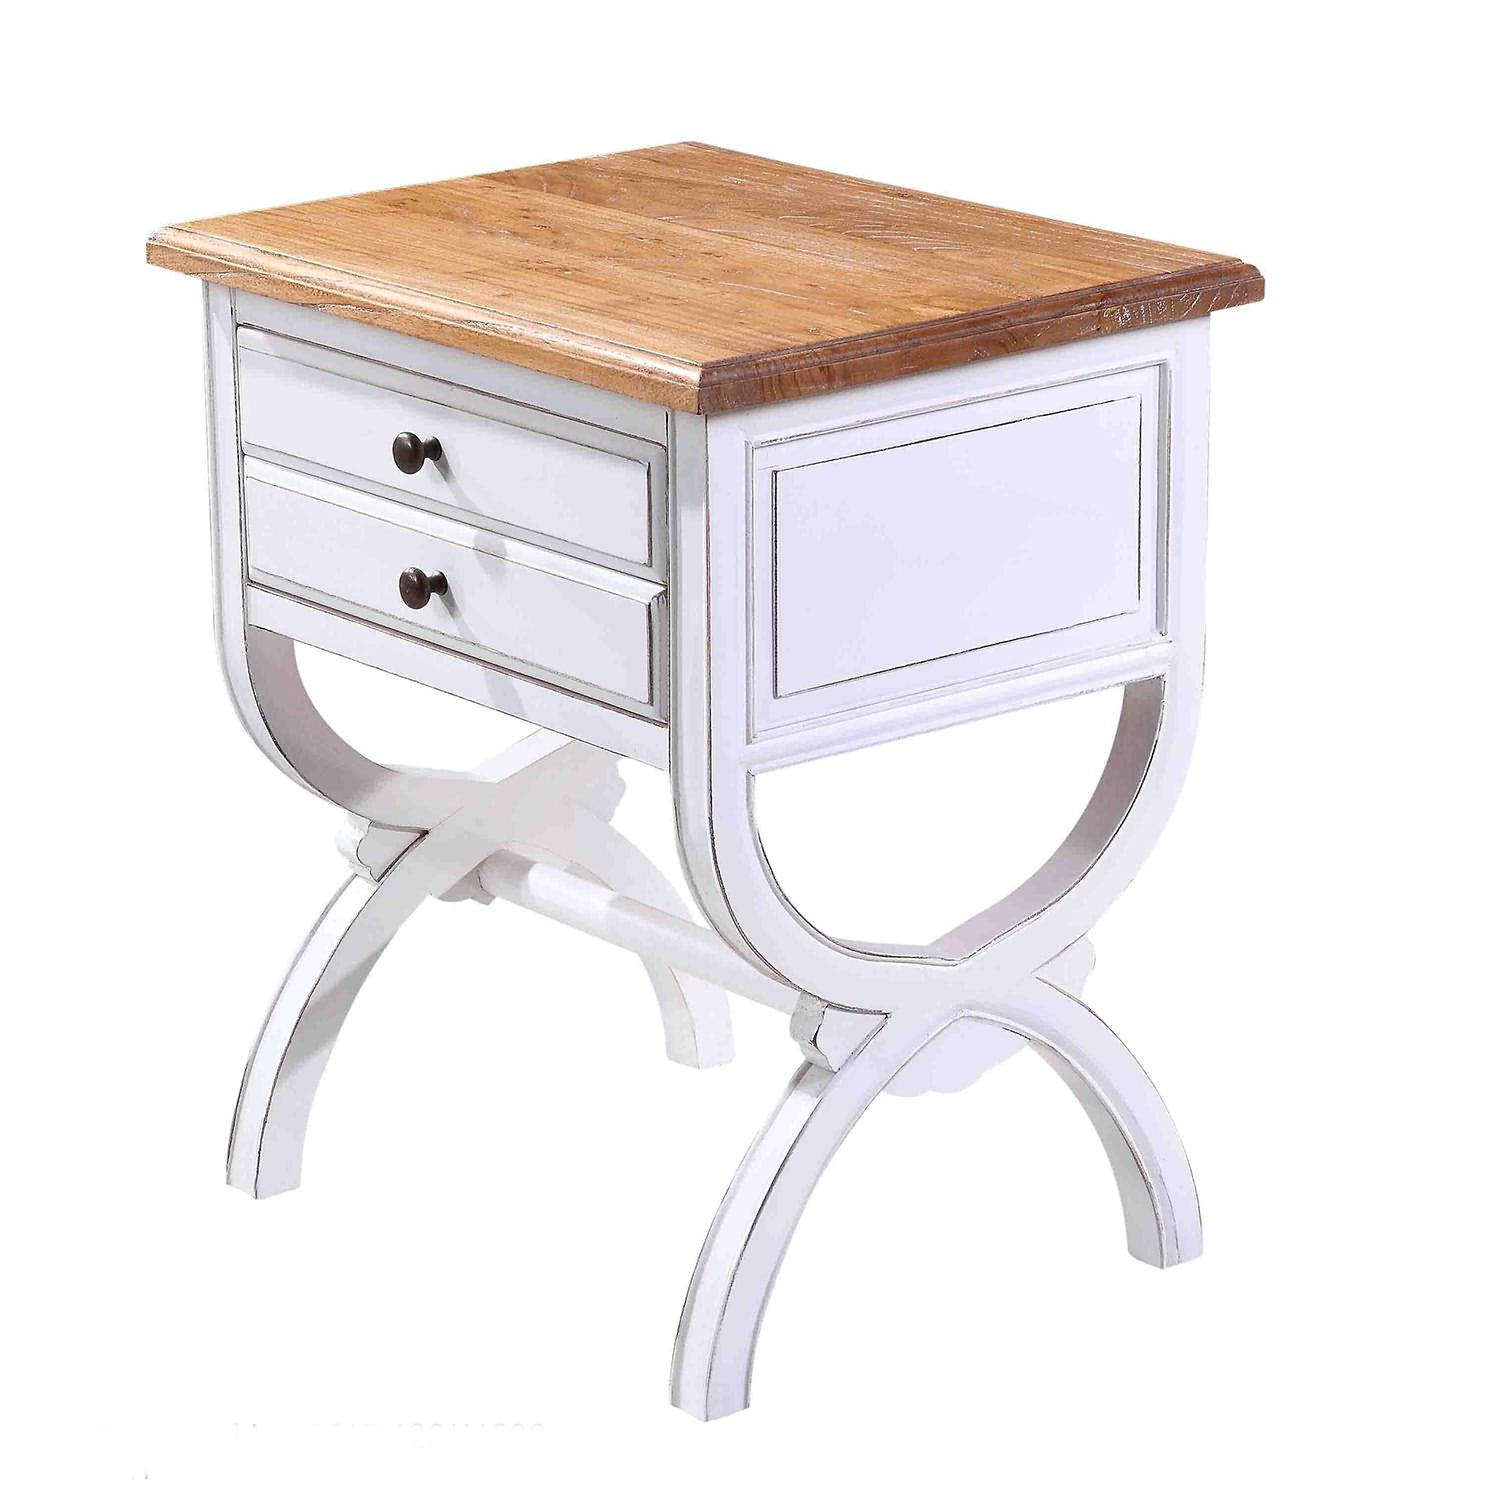 bedside tables|nightstand|Night Table|Bed Table